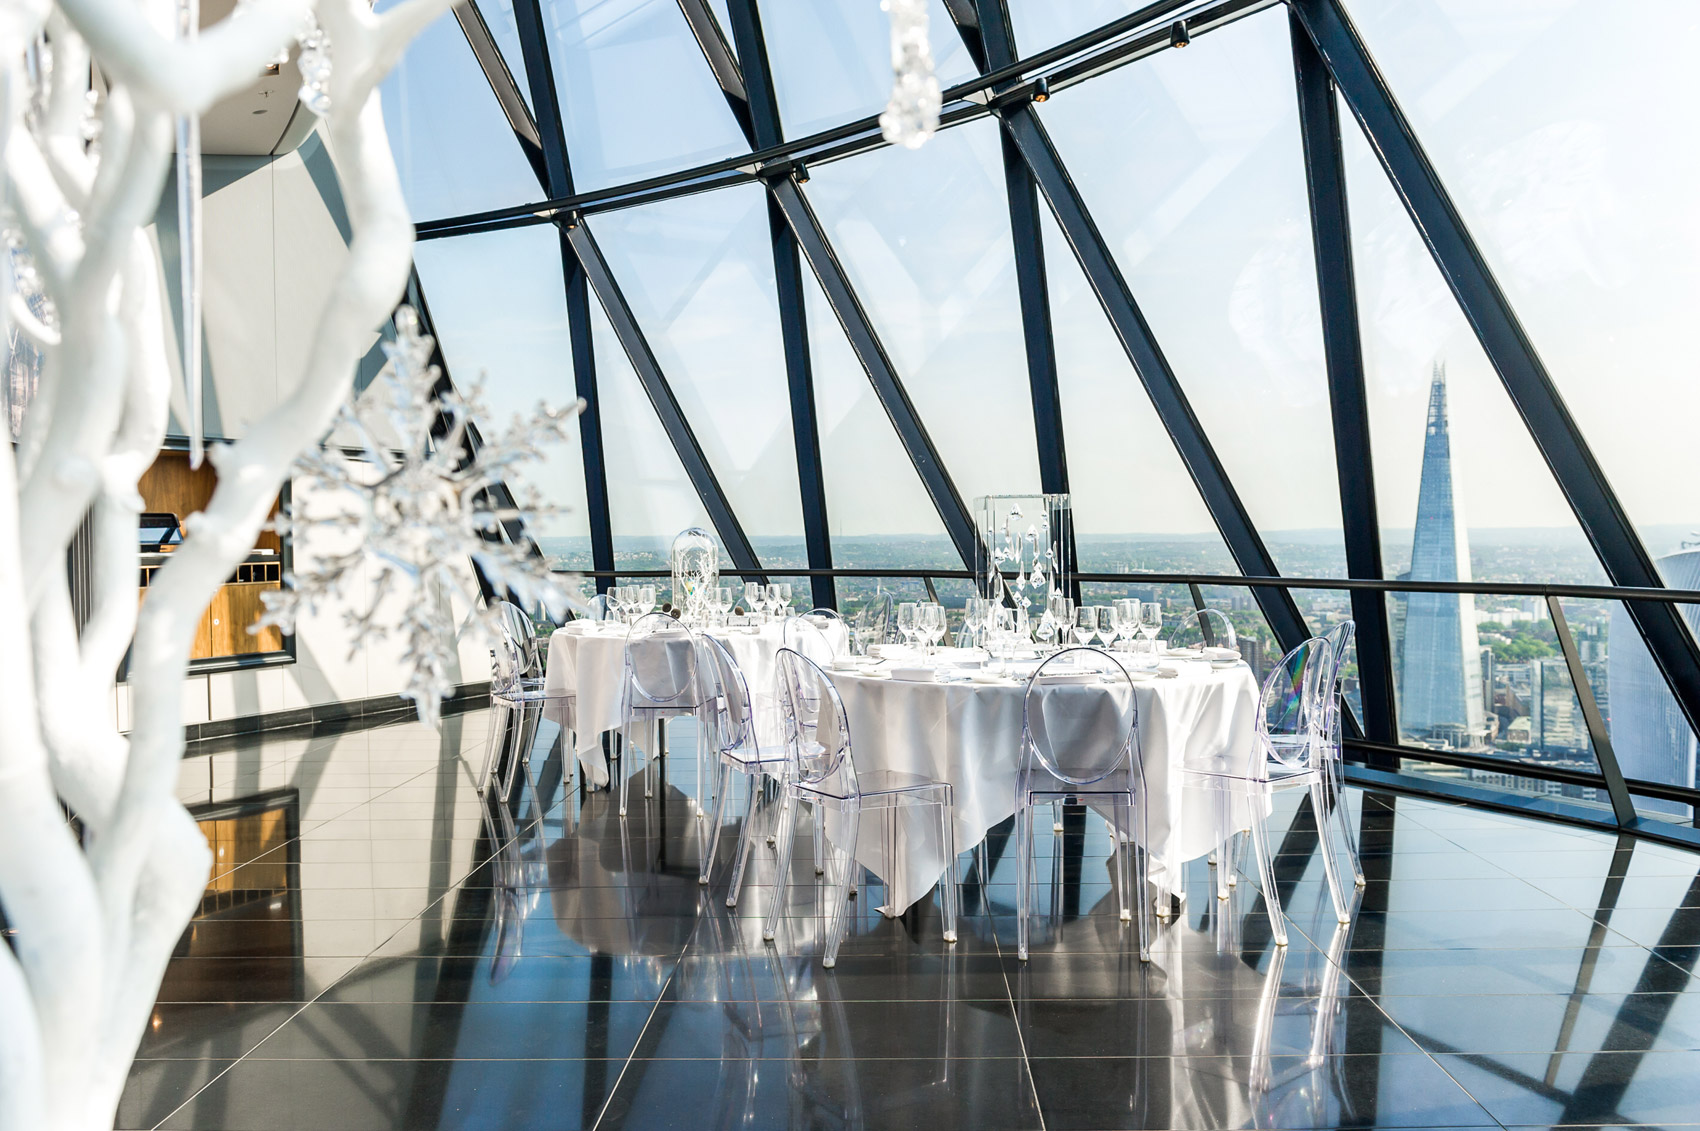 Searcys In The Sky With Diamonds' Adds Festive Sparkle To The City 5